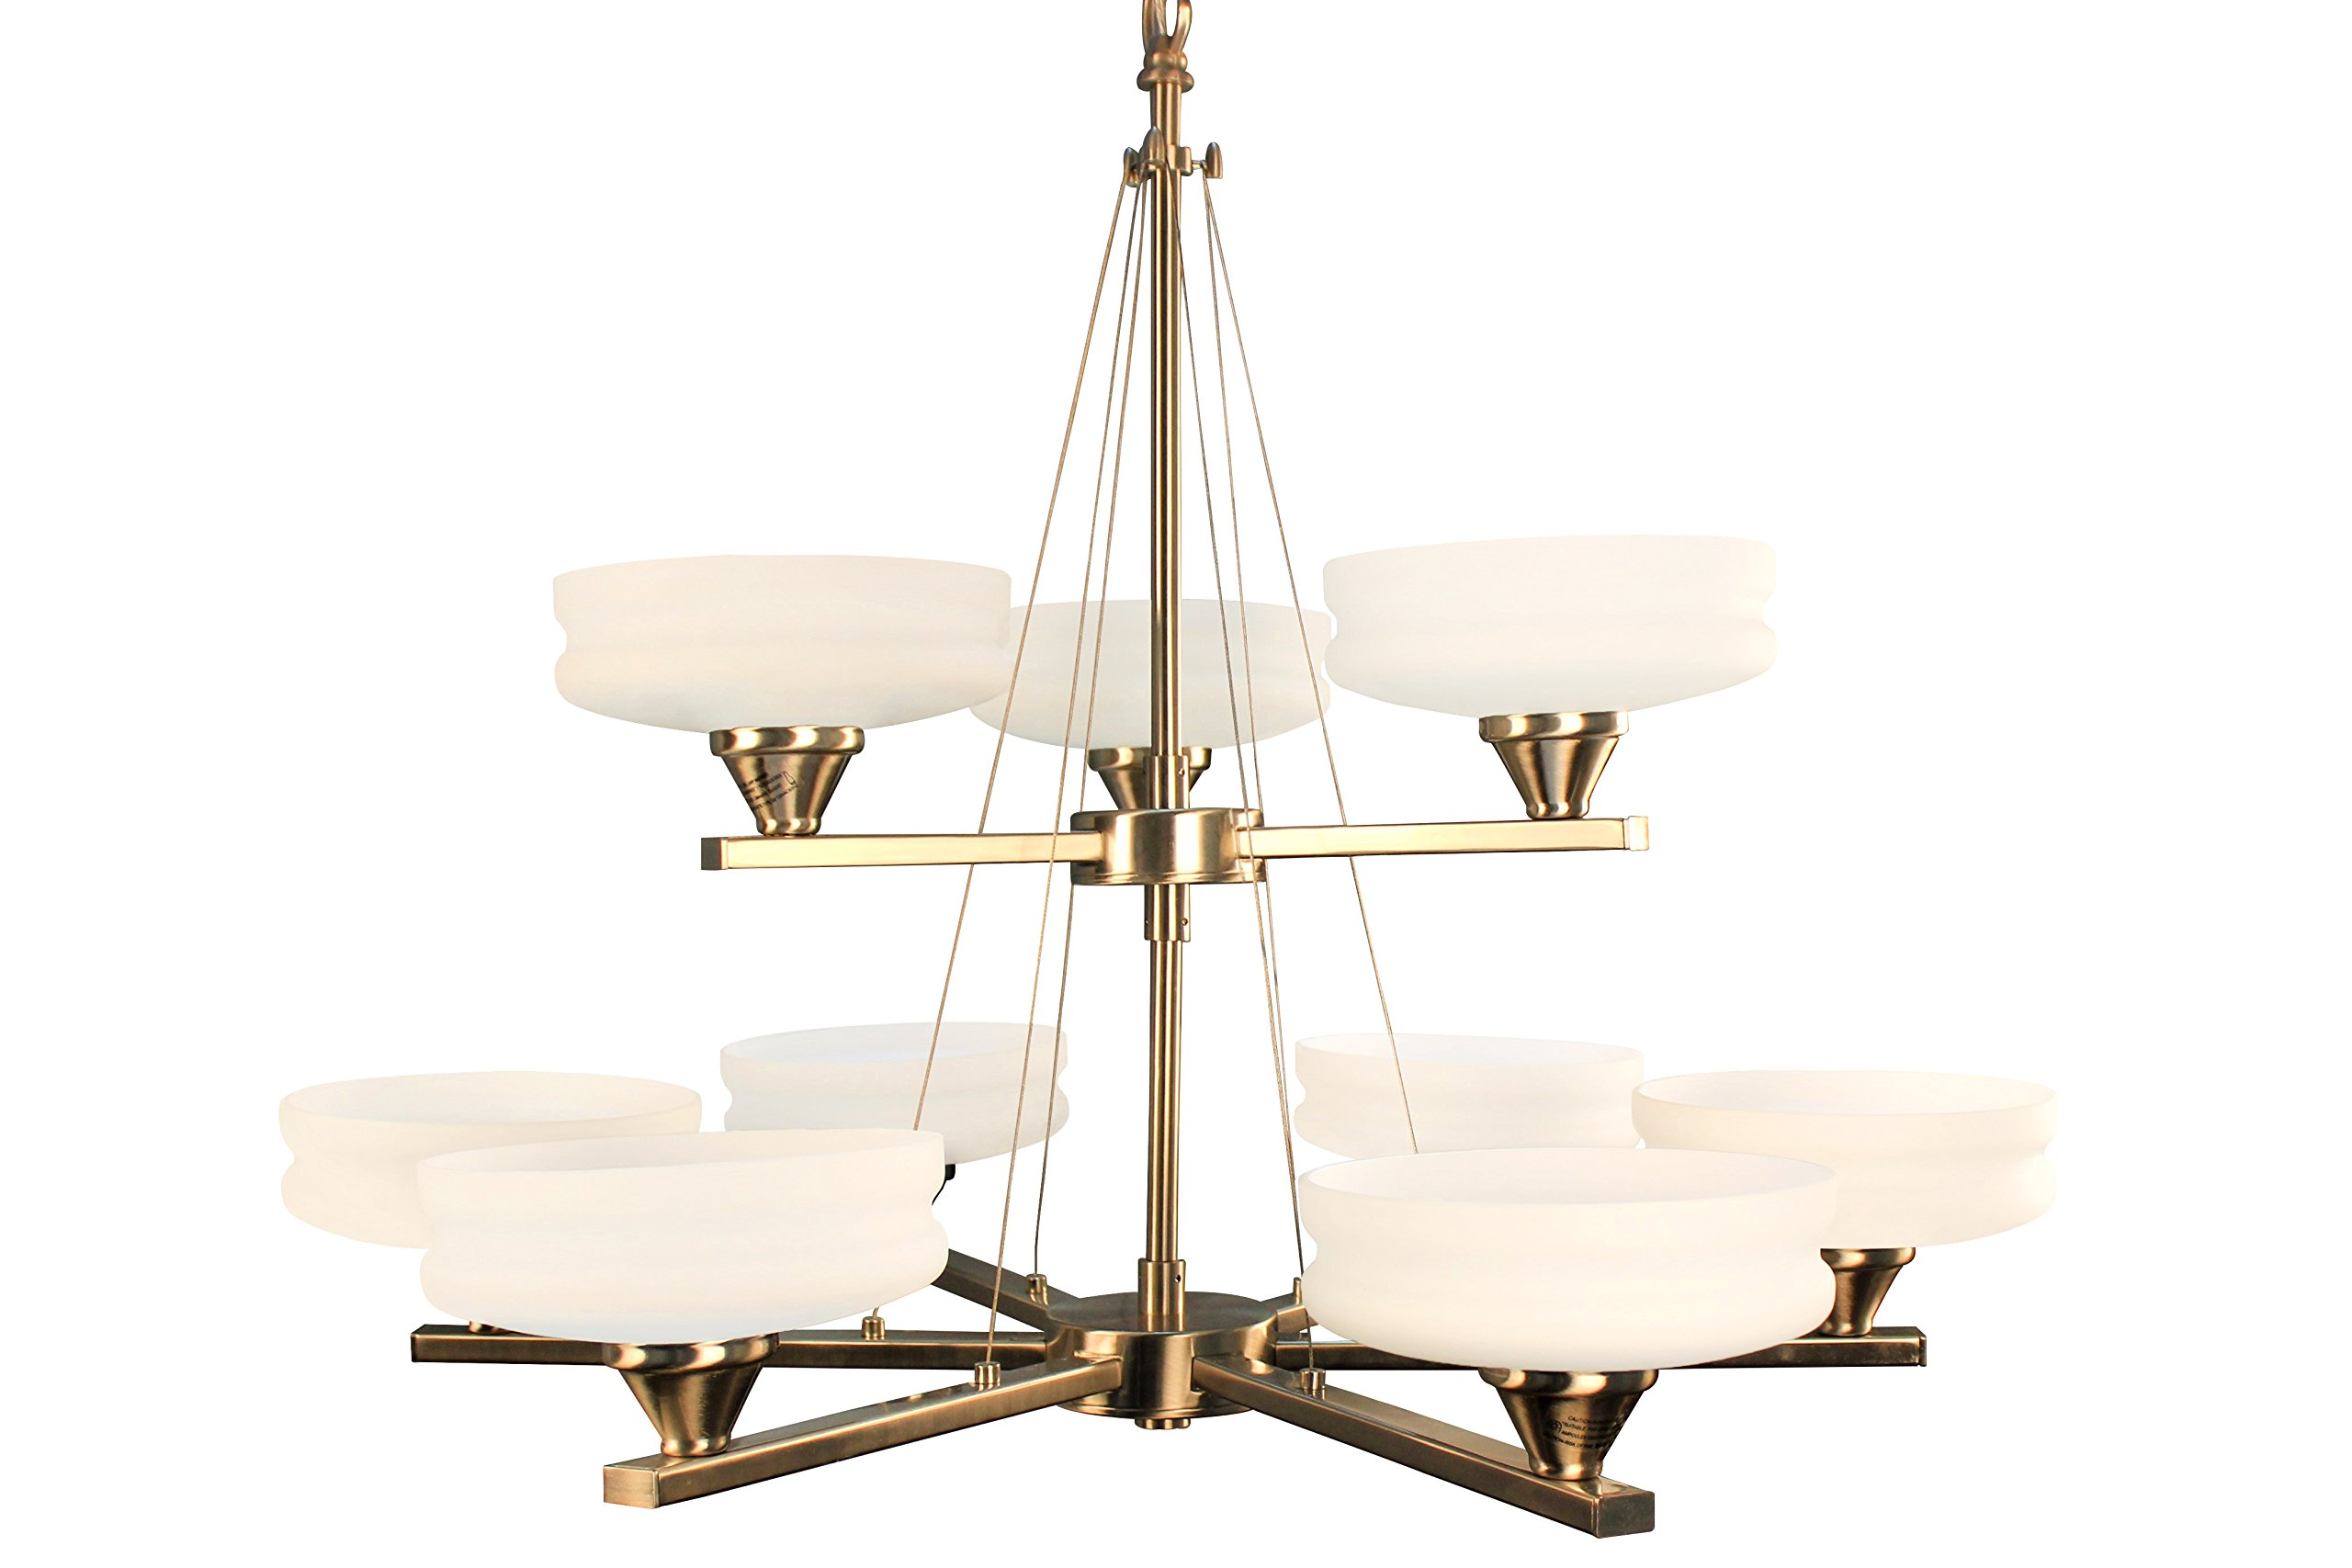 Ulextra Traditional and Modern Chandelier Pendant Lighting for Dining Room, Living Room, Kitchen, Study (8 styles) (SATIN CHROME-155)